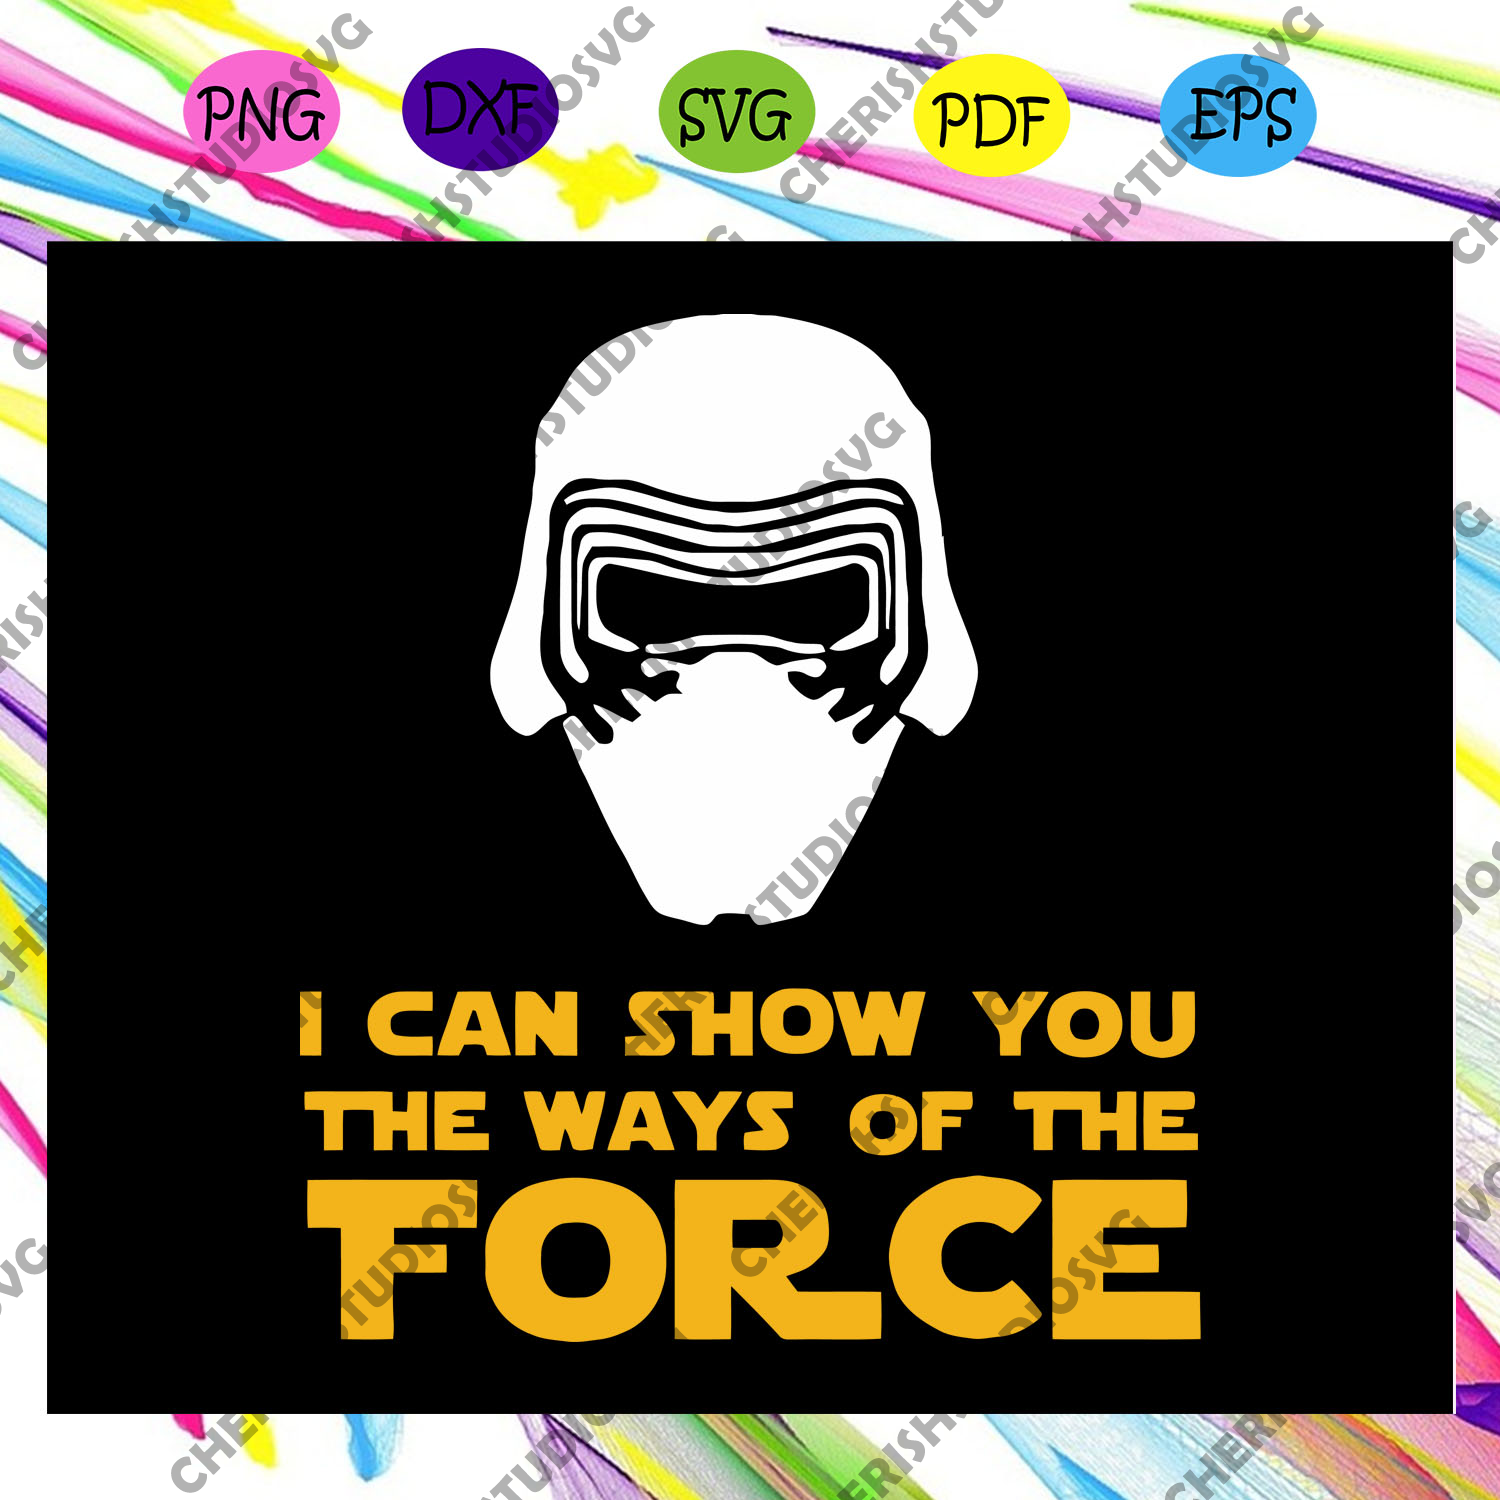 I can show you the ways of the force, star wars gift, star wars shirt, star war svg,Files For Silhouette, Files For Cricut, SVG, DXF, EPS, PNG, Instant Download